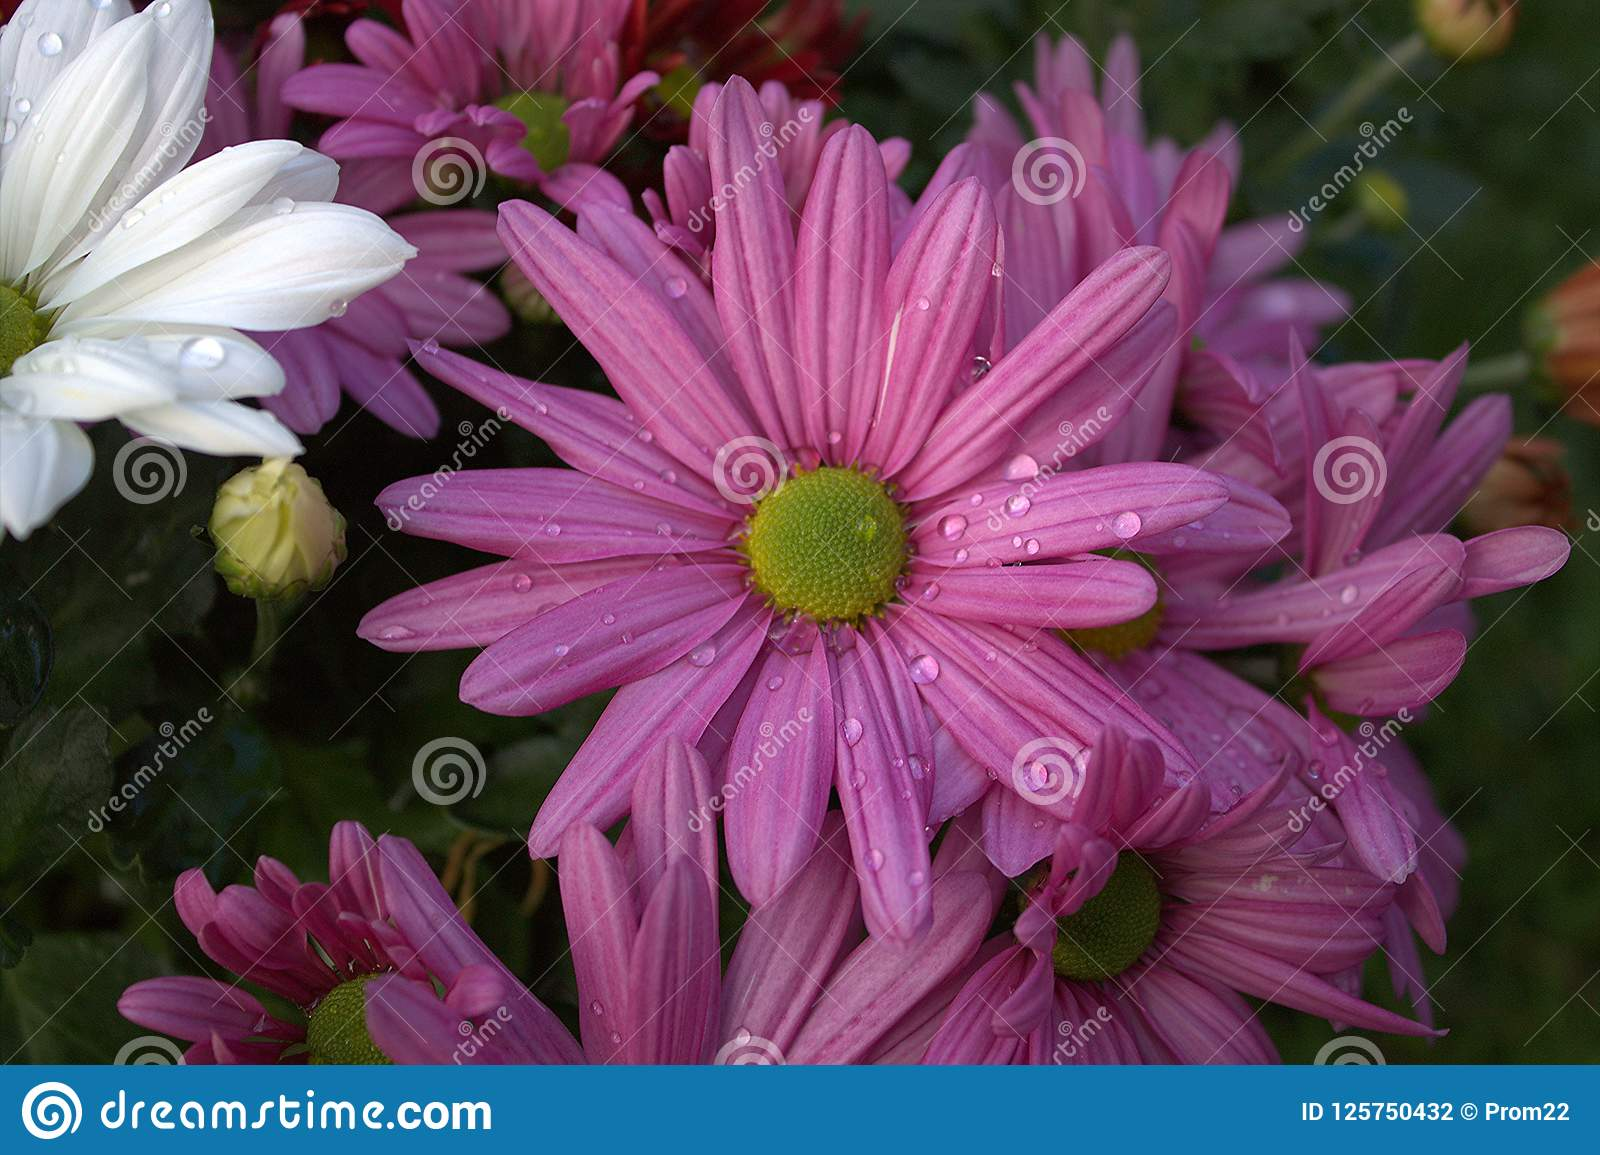 Chrysanthemums White And Lilac The Flowers Of Autumn Stock Photo